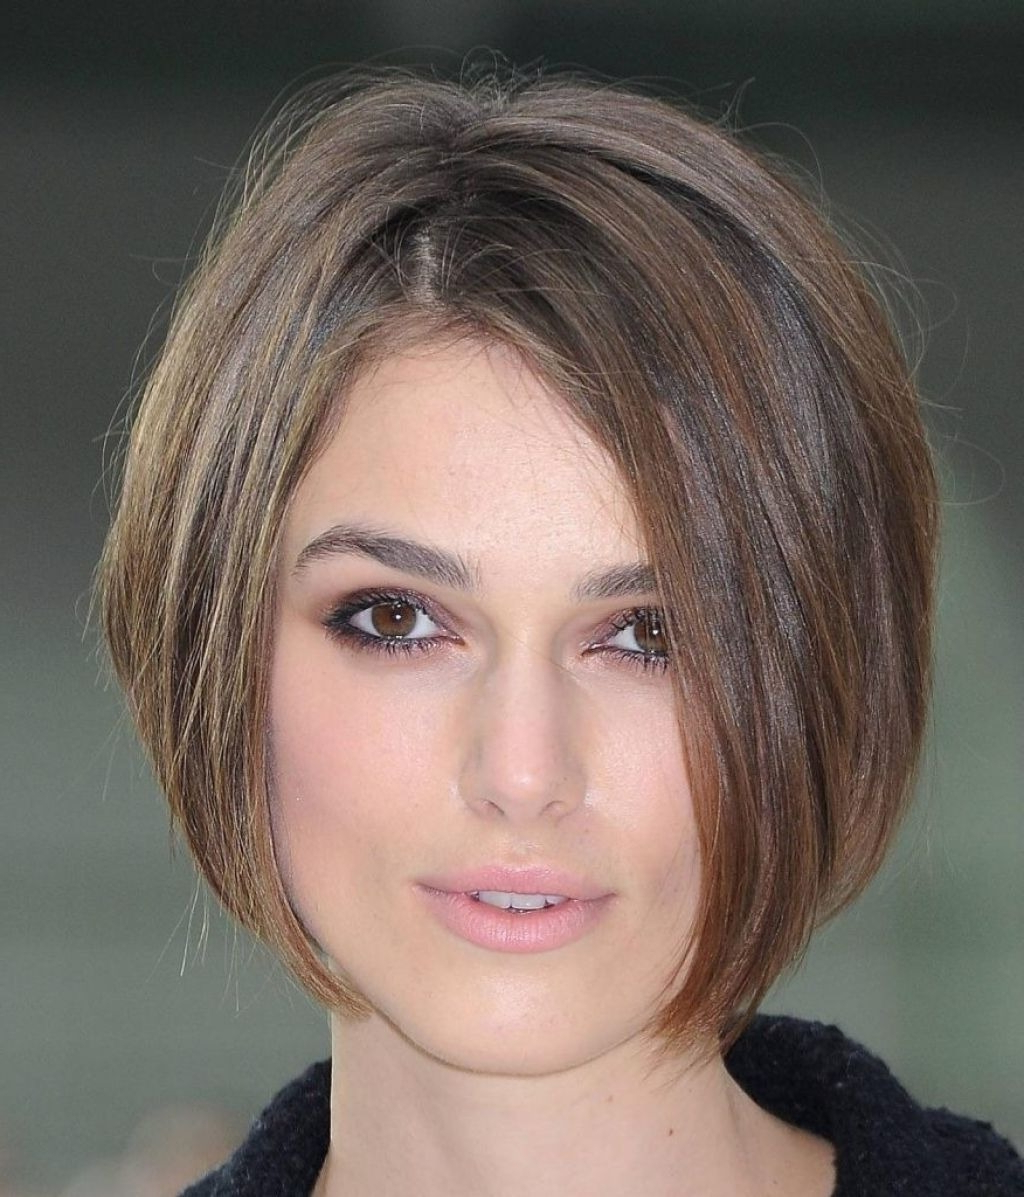 Trendy Short Hairstyles Round Face Fine Hair For Everyone | Hairstyles Throughout Trendy Short Haircuts For Round Faces (View 6 of 25)